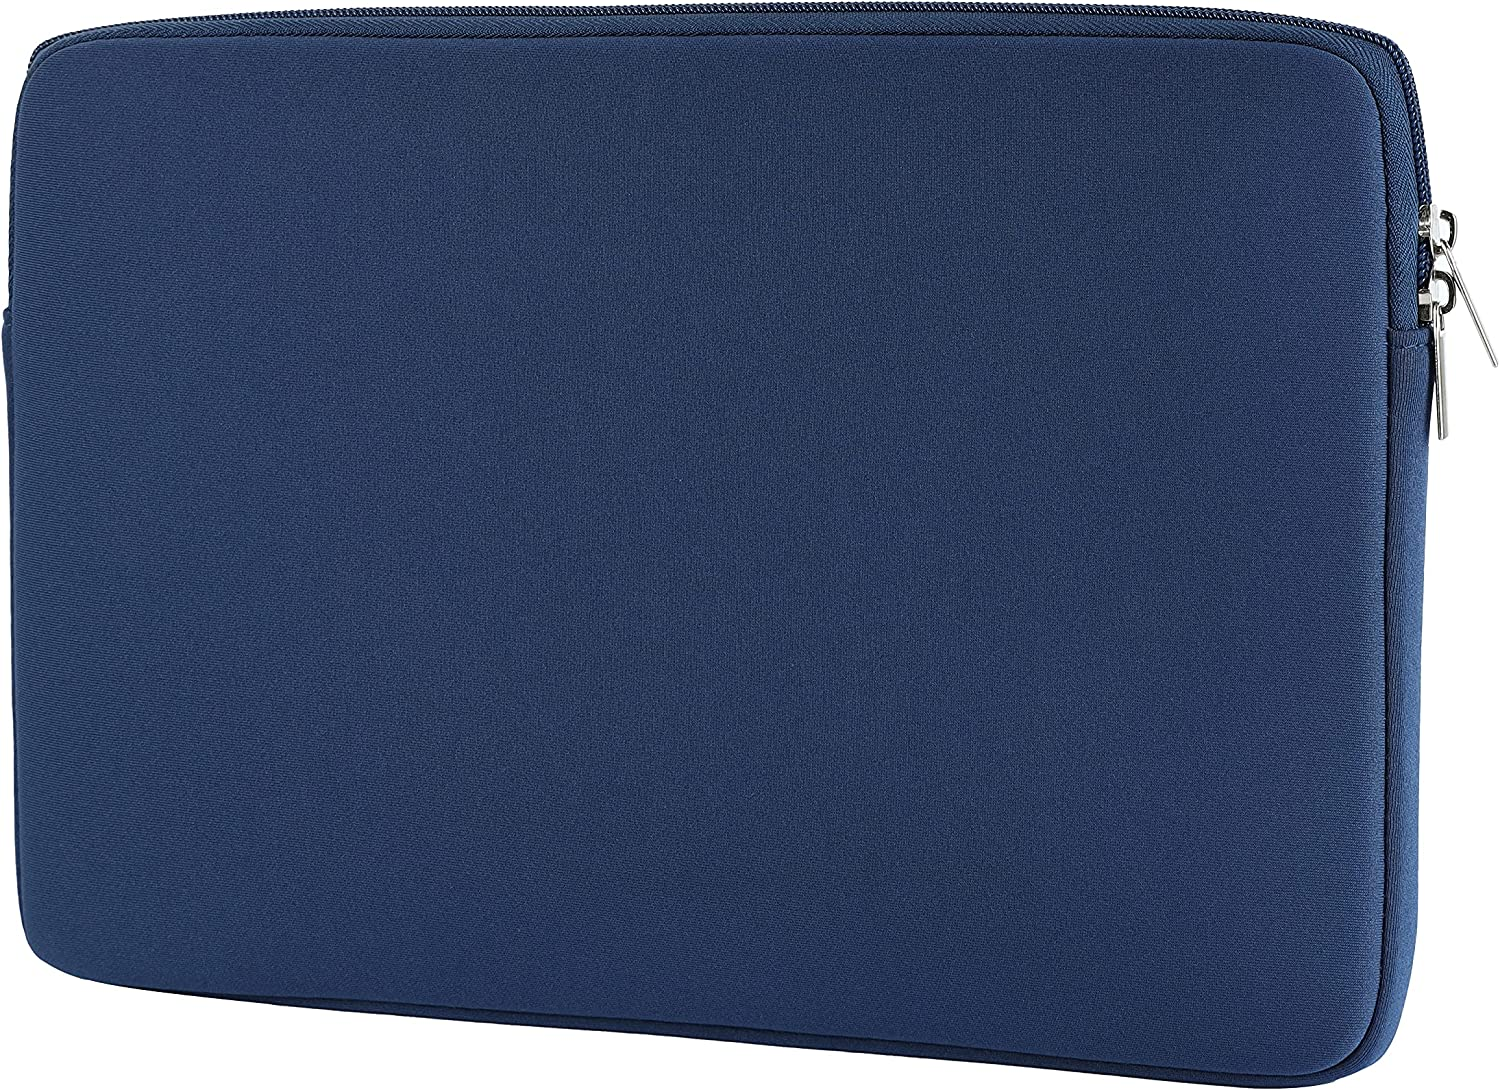 Laptop Sleeve Case 11-15.6 Inch Easycarring Computer Bag, Compatible with Notebook Computer MacBook Air/Pro Dell Lenovo Chromebook,Protective Bag,Dark Blue